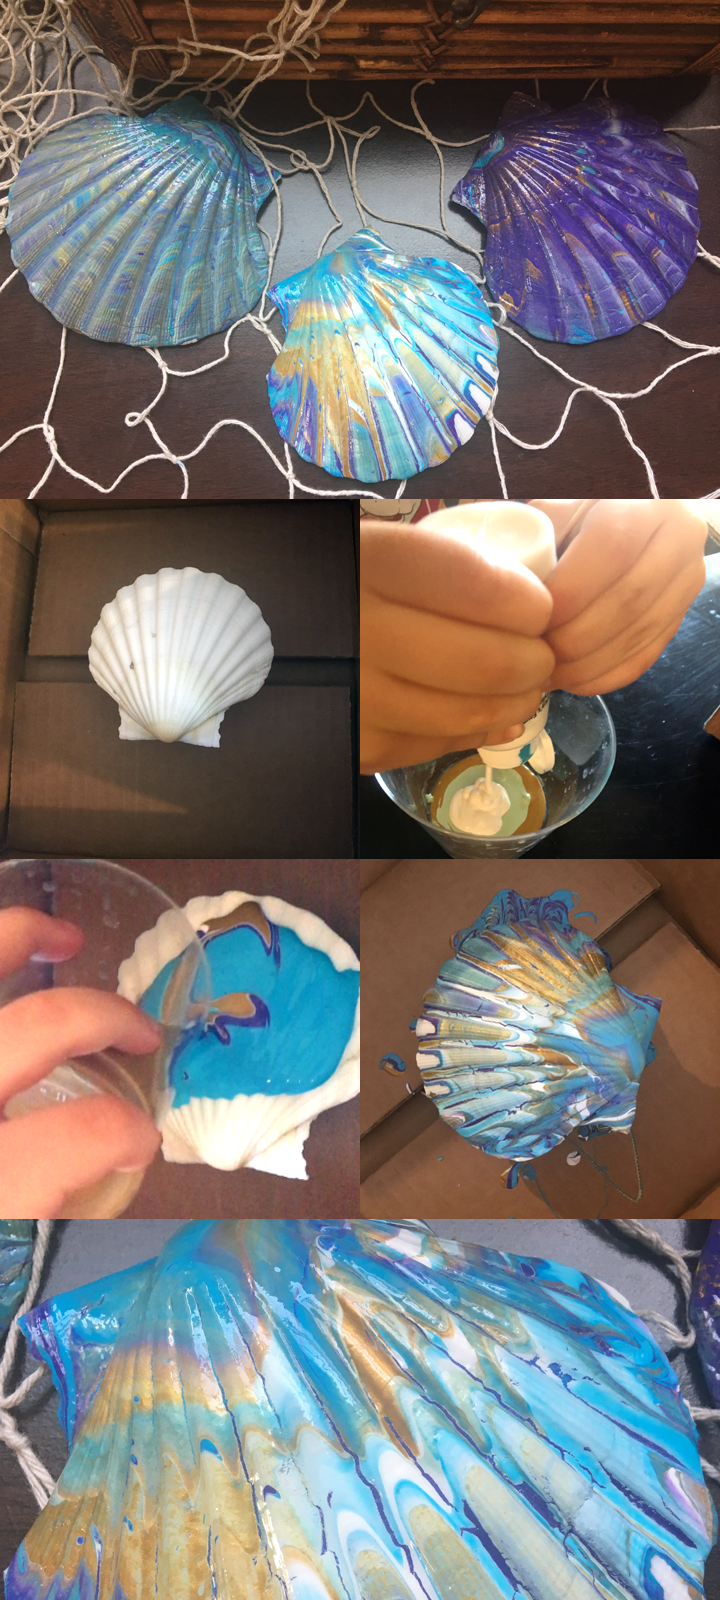 DIY Mermaid Craft - Acrylic Pouring Over Shells - Style Me Fantasy    Easy Mermaid Craft - this is a very quick and kid friendly #craft! Decorate magical mermaid shells. Perfect for a mermaid party or for mermaid decor.     #mermaid #DIY #sea #shell #acrylic #acrylicpouring #mermaidbathroomdecor